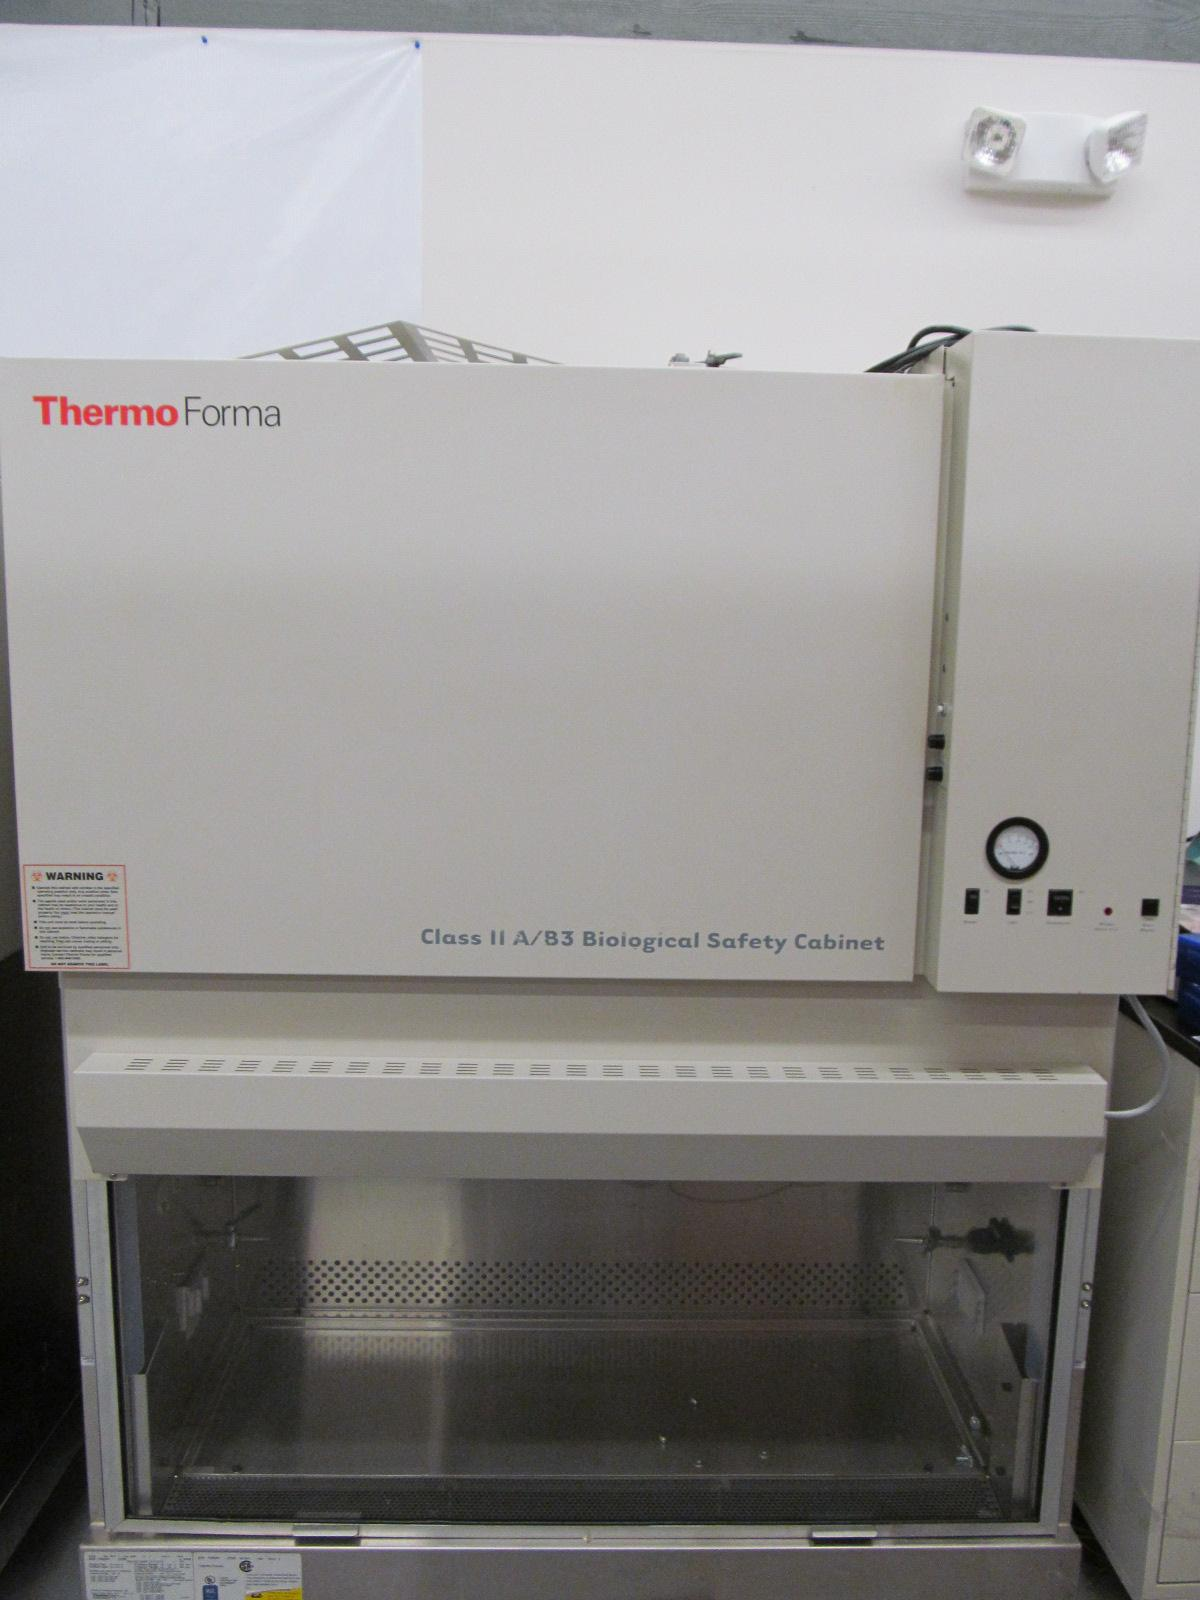 Thermo Forma 1284 4-Foot A2 Biosafety Cabinet